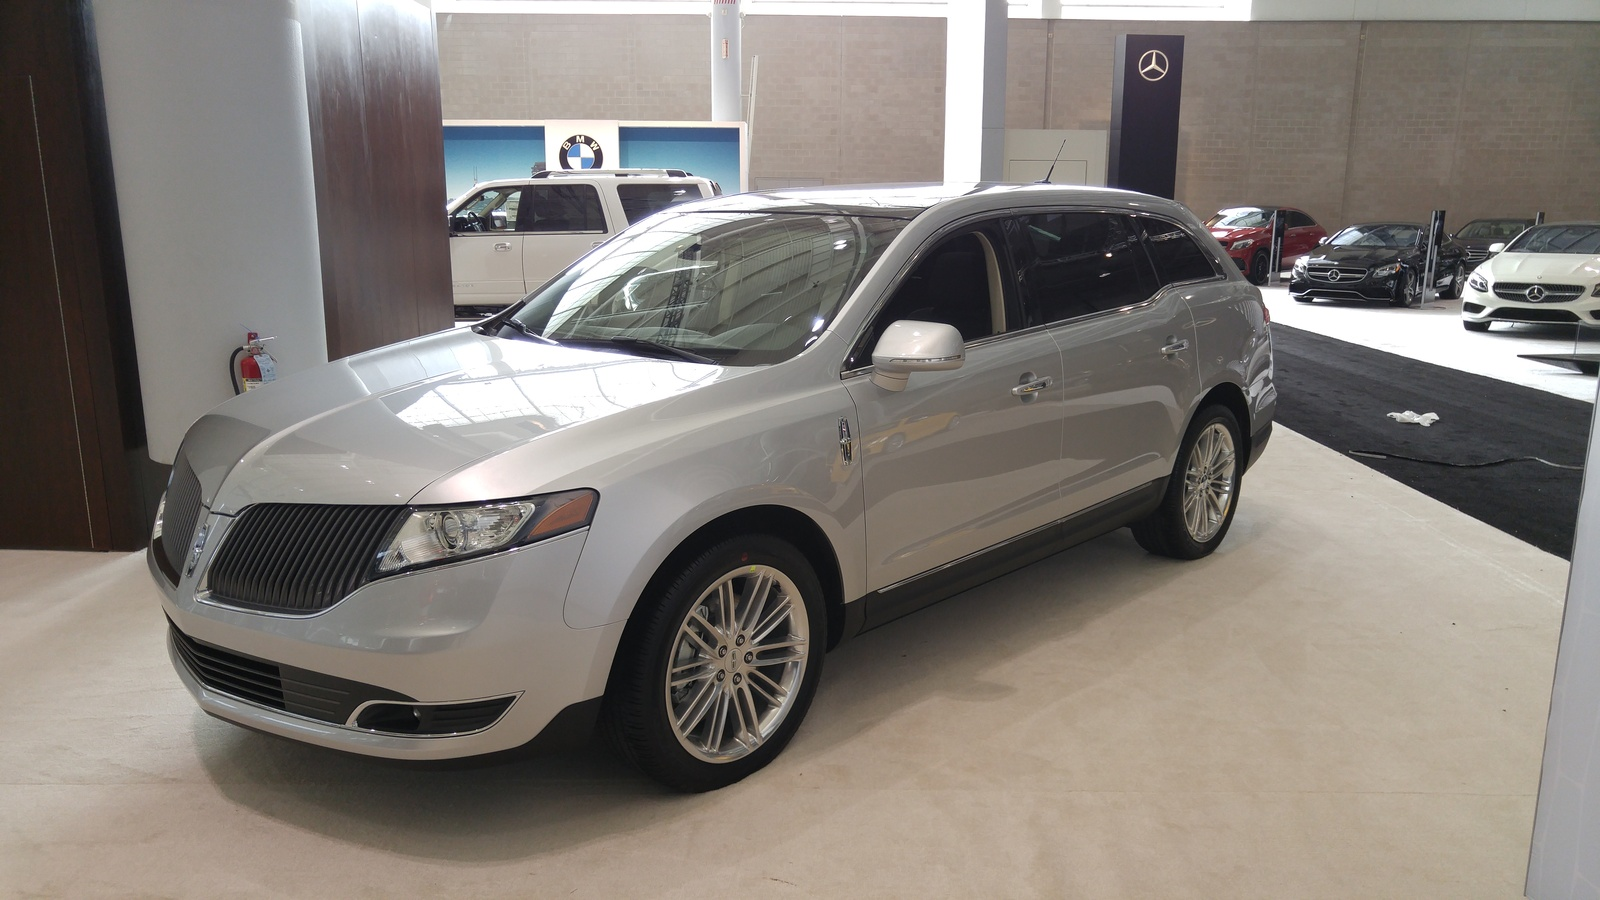 crossover mid mkx auto size detroit mkt news photo live photos starts gallery show price lincoln at